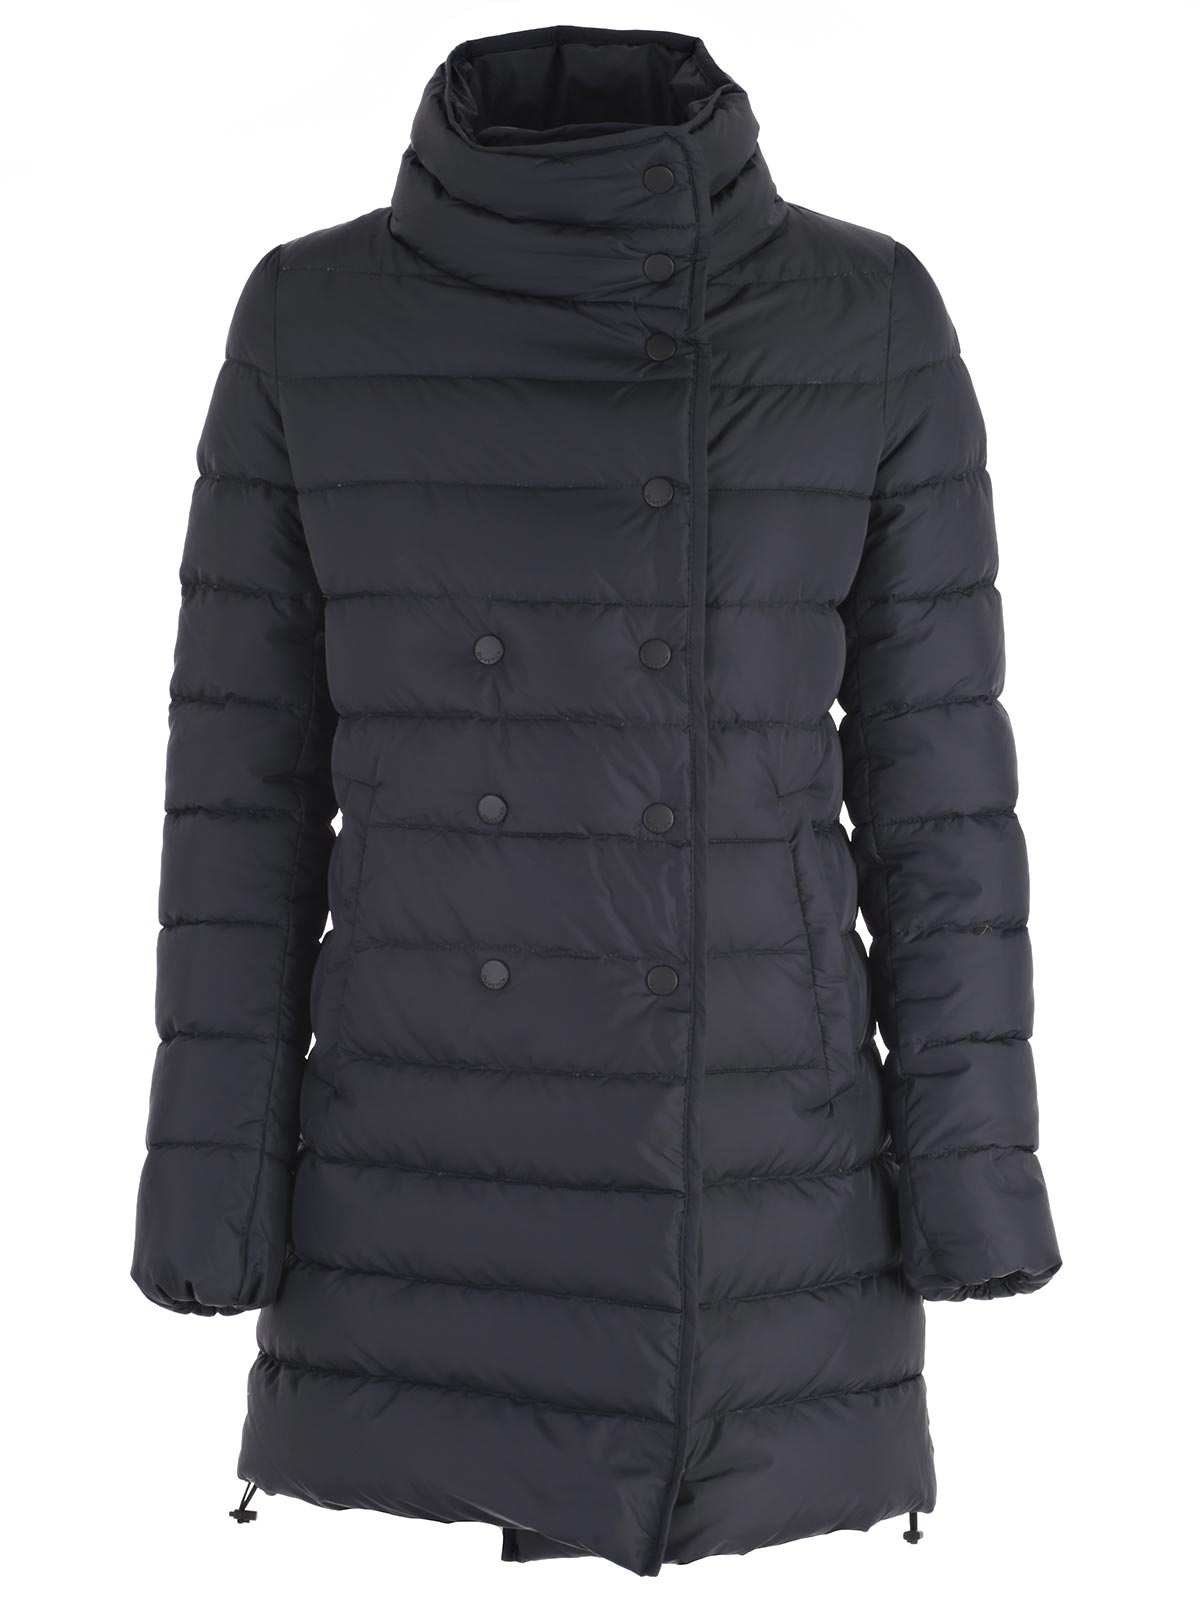 Picture of DUVETICA Padded Jacket CAITRIONA PIUMINO D.PETTO COLLO GURU